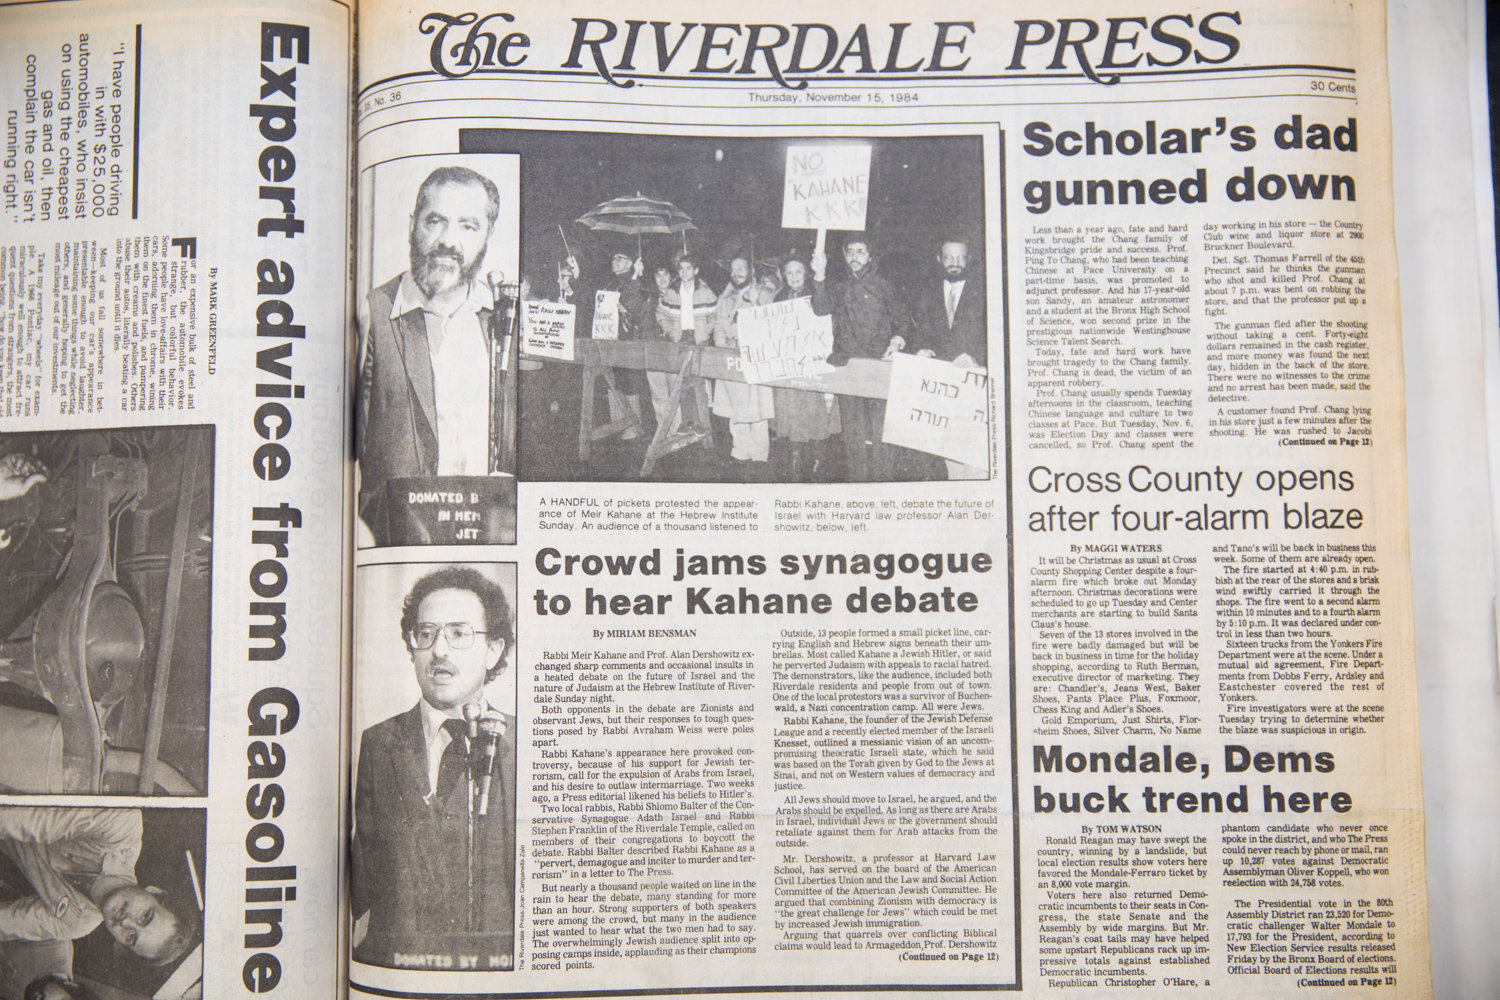 The March 1, 1984 edition of The Riverdale Press provided extensive coverage of the debate between then-Harvard Law School professor Alan Dershowitz and Rabbi Meir Kahane. While both were observant Jews and Zionists, they had sharply different opinions on the future of Israel.